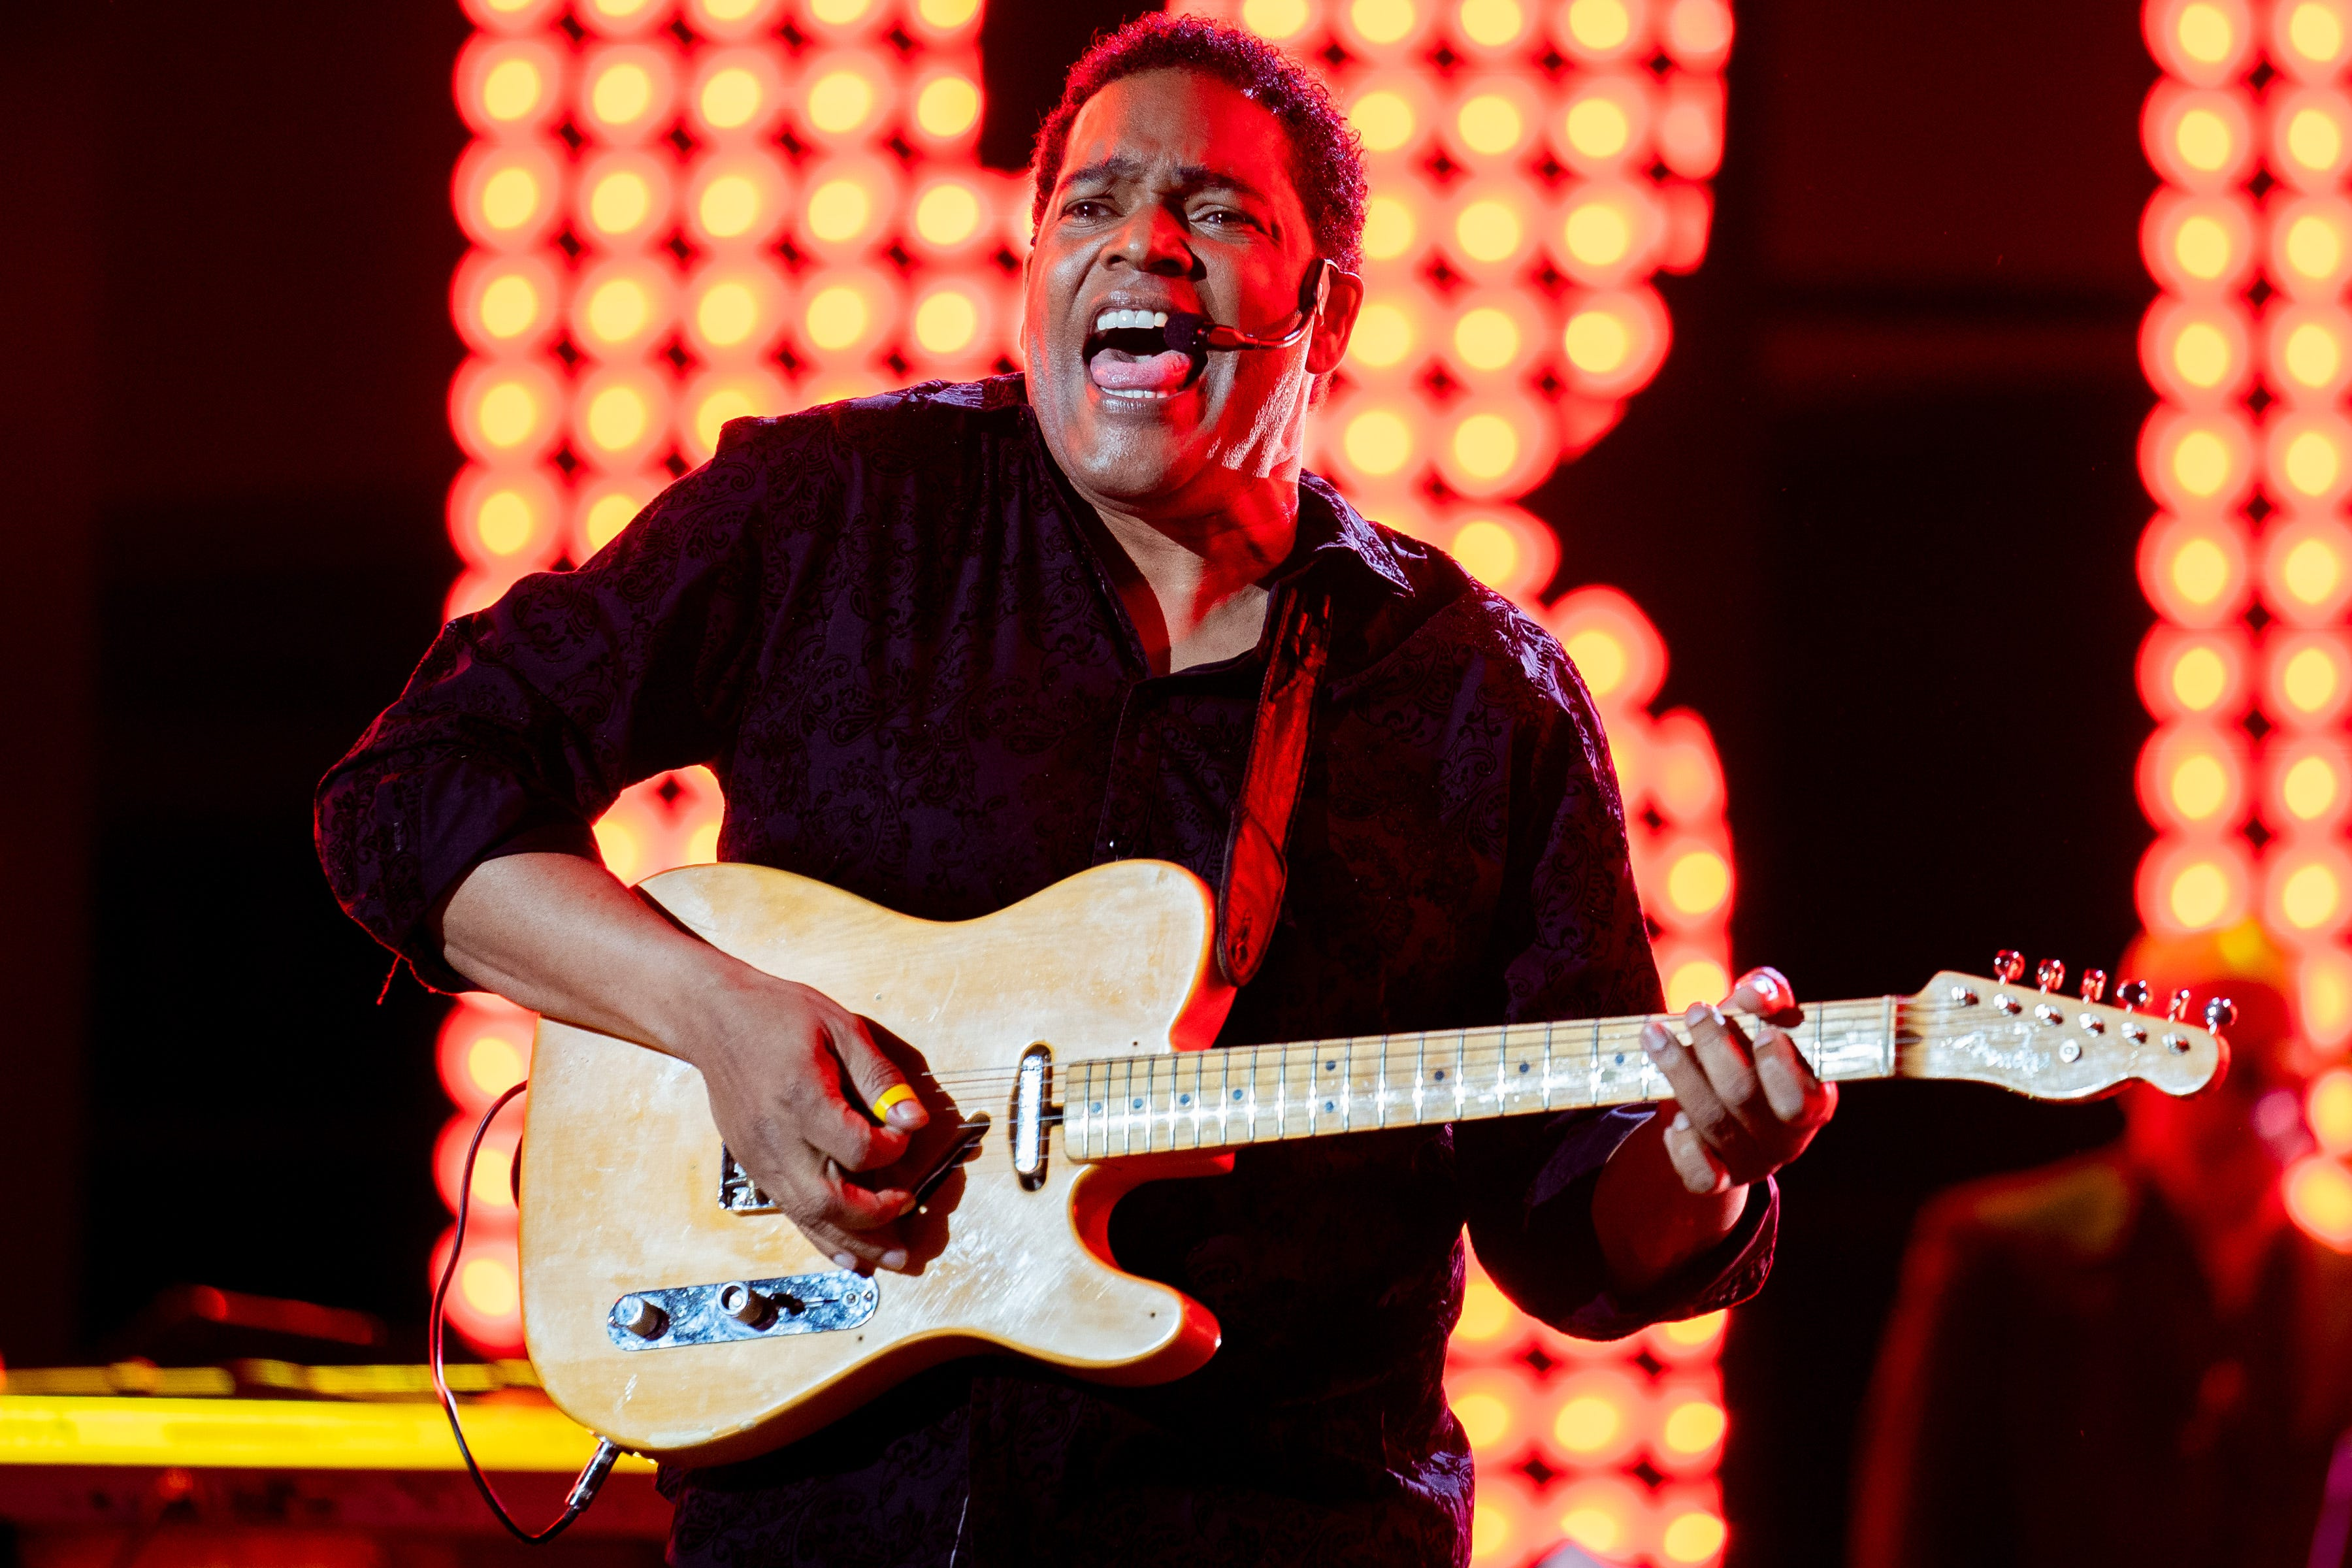 Dion Pride performs during the CMT Giants: Charley Pride show at Ascend Amphitheater in Nashville, Tenn., Thursday, April 8, 2021.